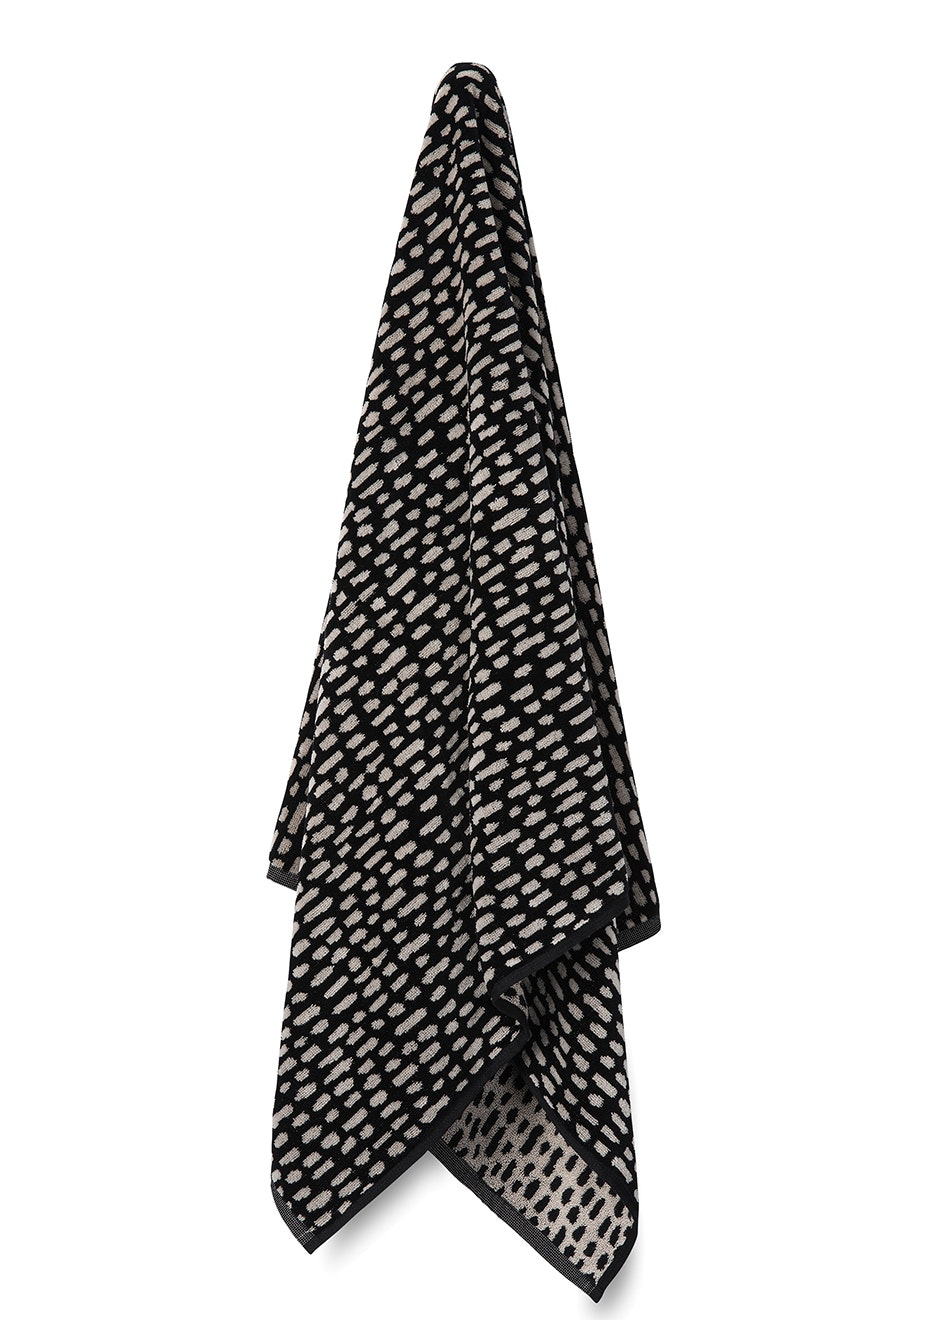 Città - Nasiji Velour Bath Towel Bone/Black  70x140cm